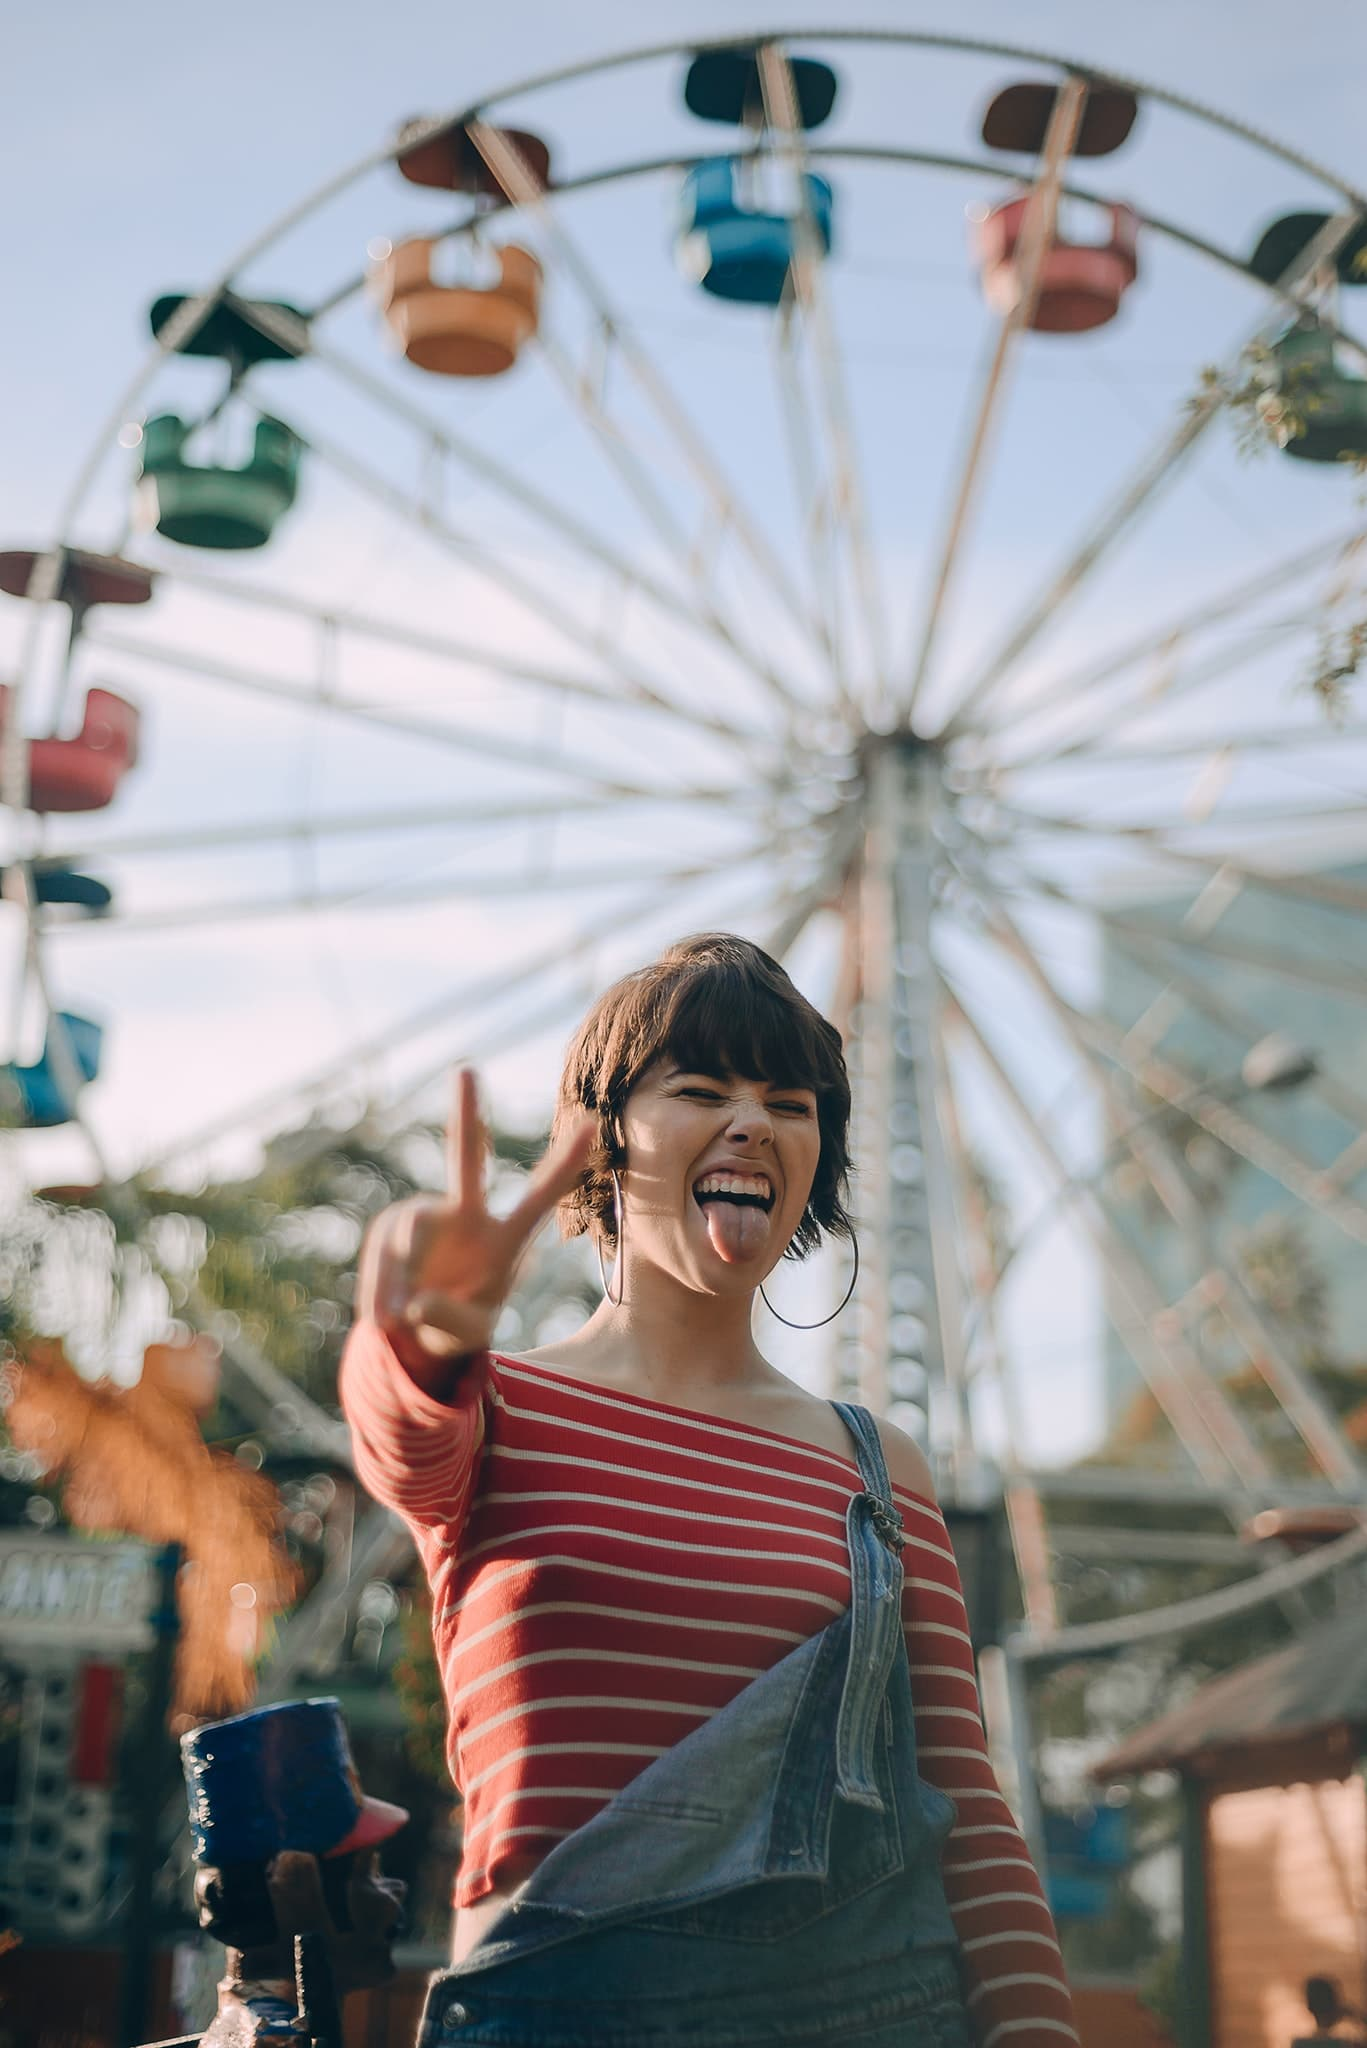 girl in front of a colourful Ferris wheel